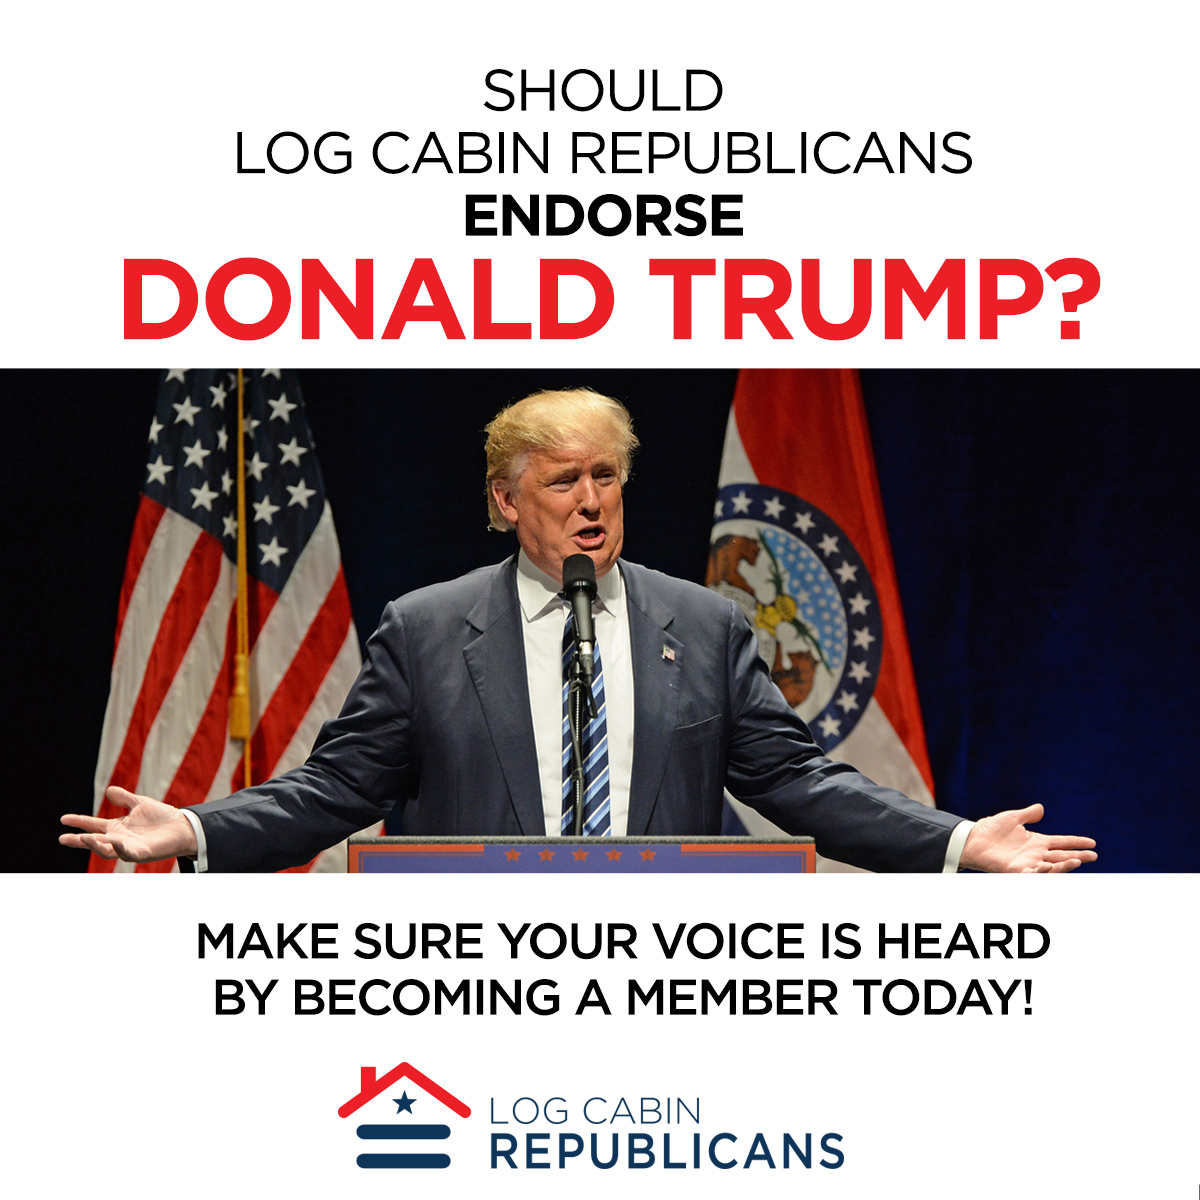 Very Impressive portraiture of Log Cabin Republicans Should Log Cabin Republicans Endorse Donald  with #851B0E color and 1200x1200 pixels